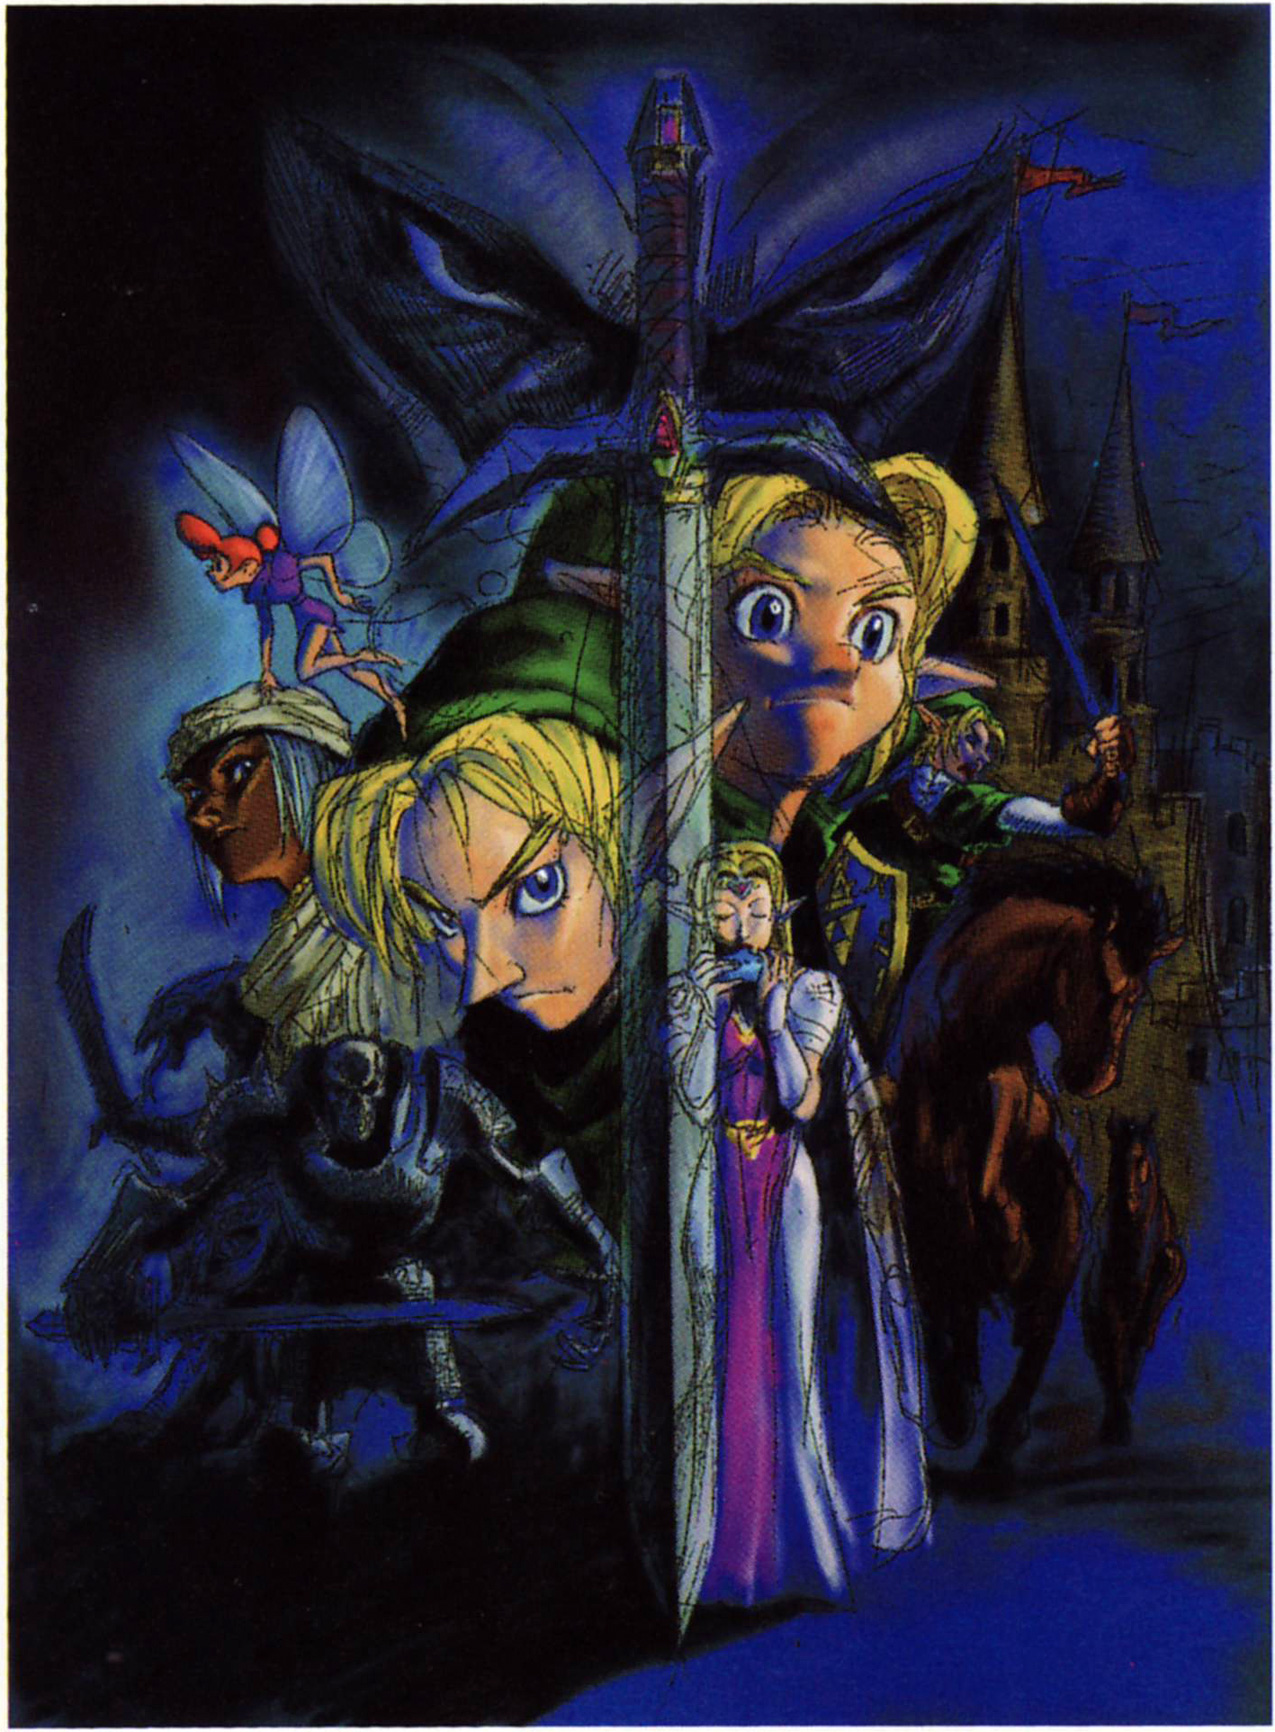 Interesting Oot Concept Art Of Sheik And A Fairy From Hyrule